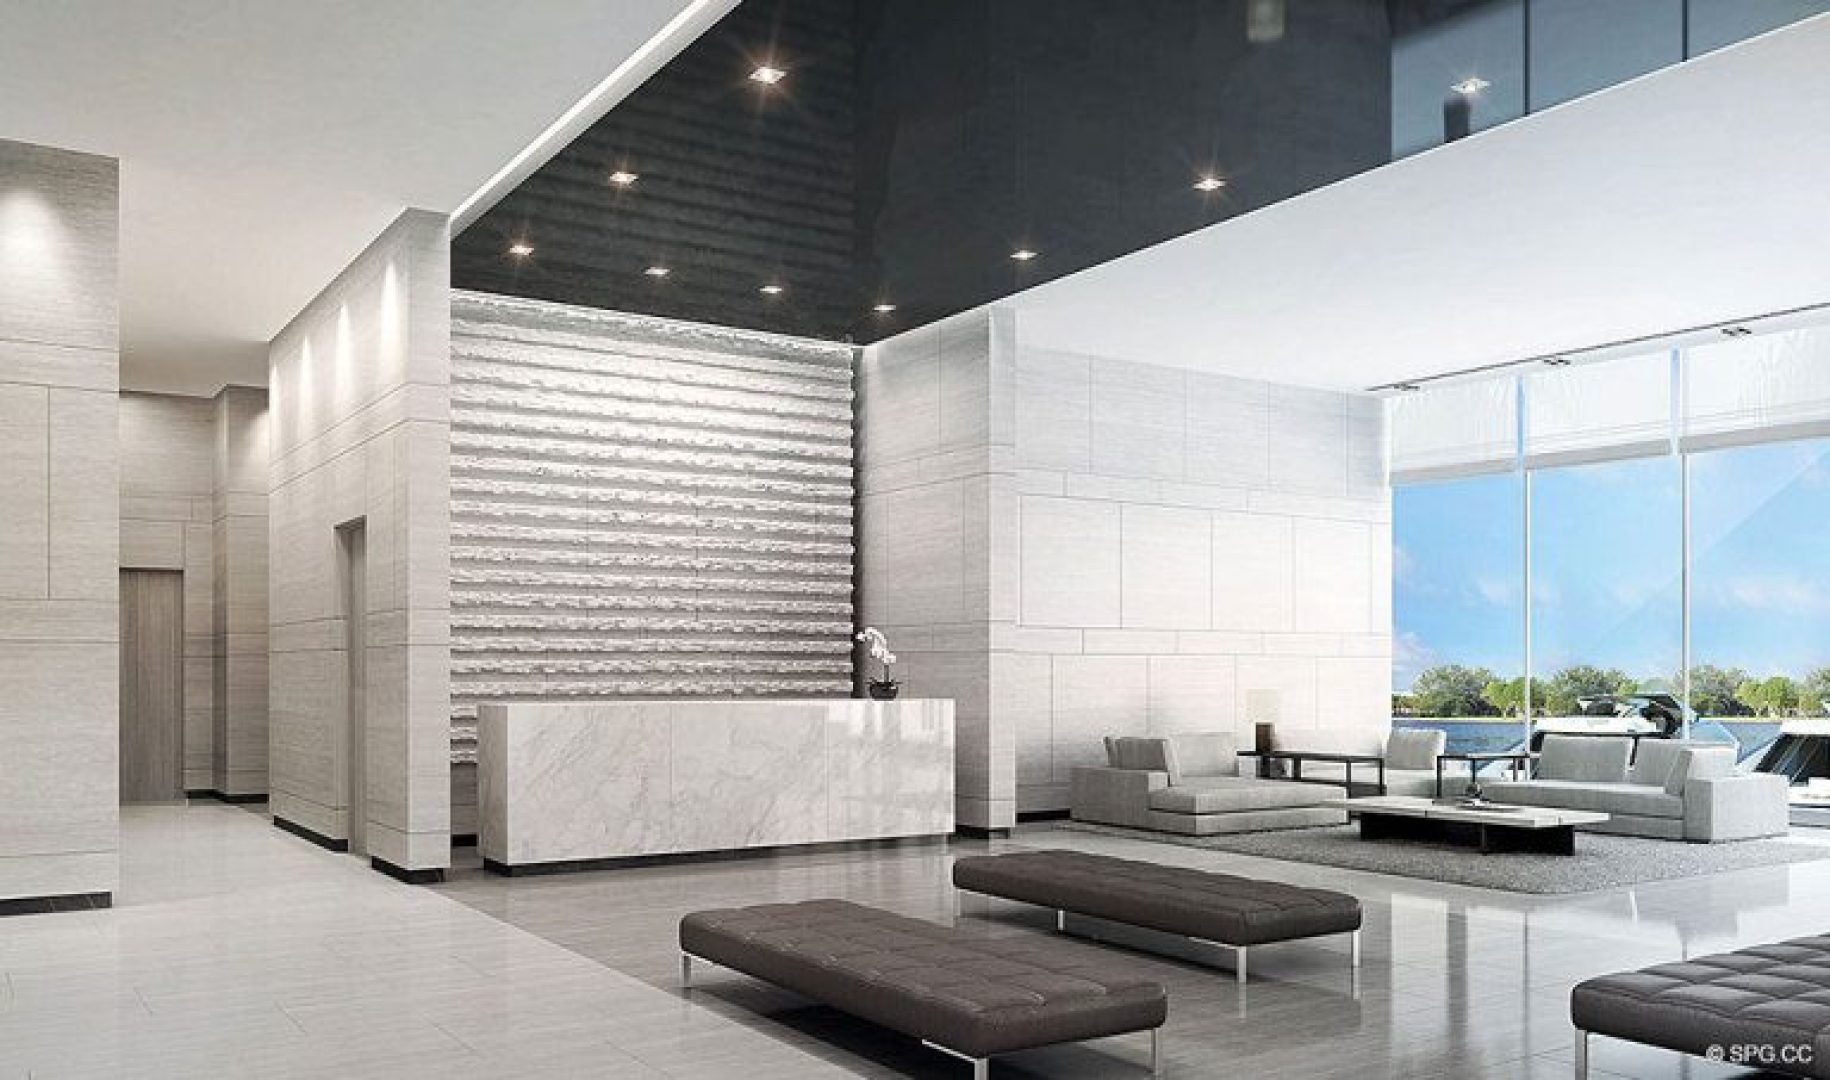 Lobby Reception Design for Riva, Luxury Waterfront Condos in Fort Lauderdale, Florida 33304.